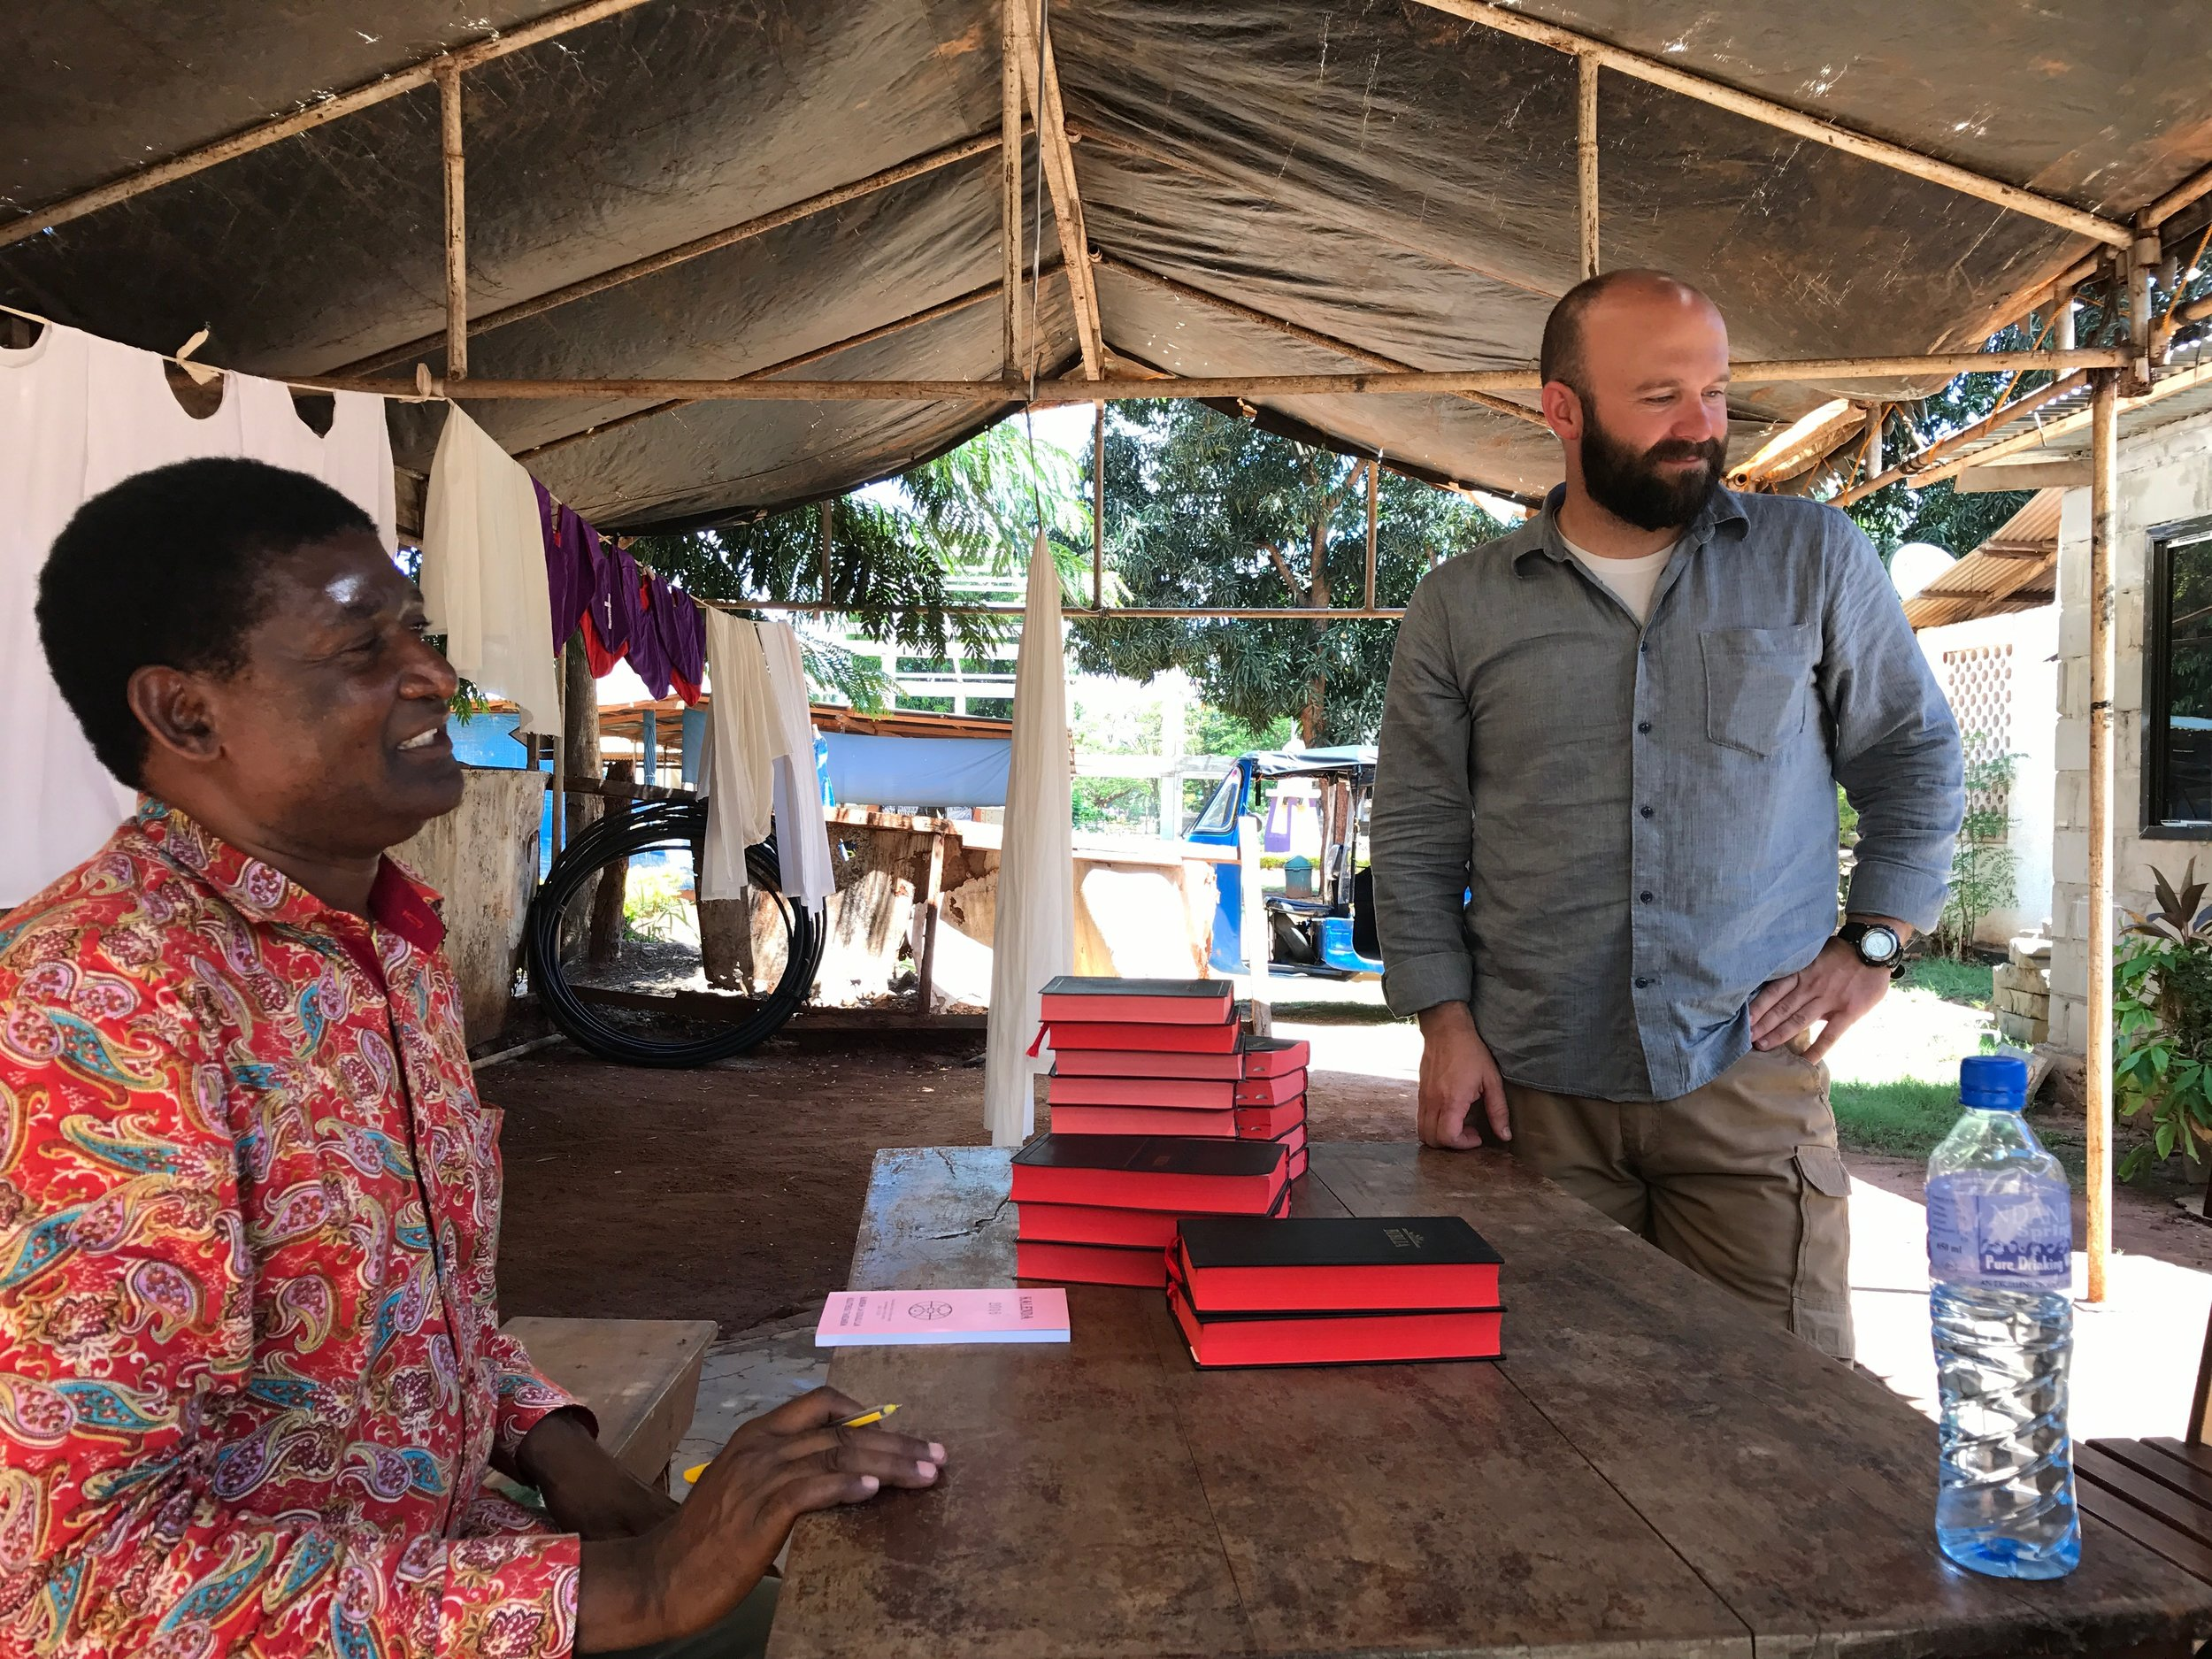 Pastor Frank helps Dillon purchase Bibles to send to Nanguruwe.